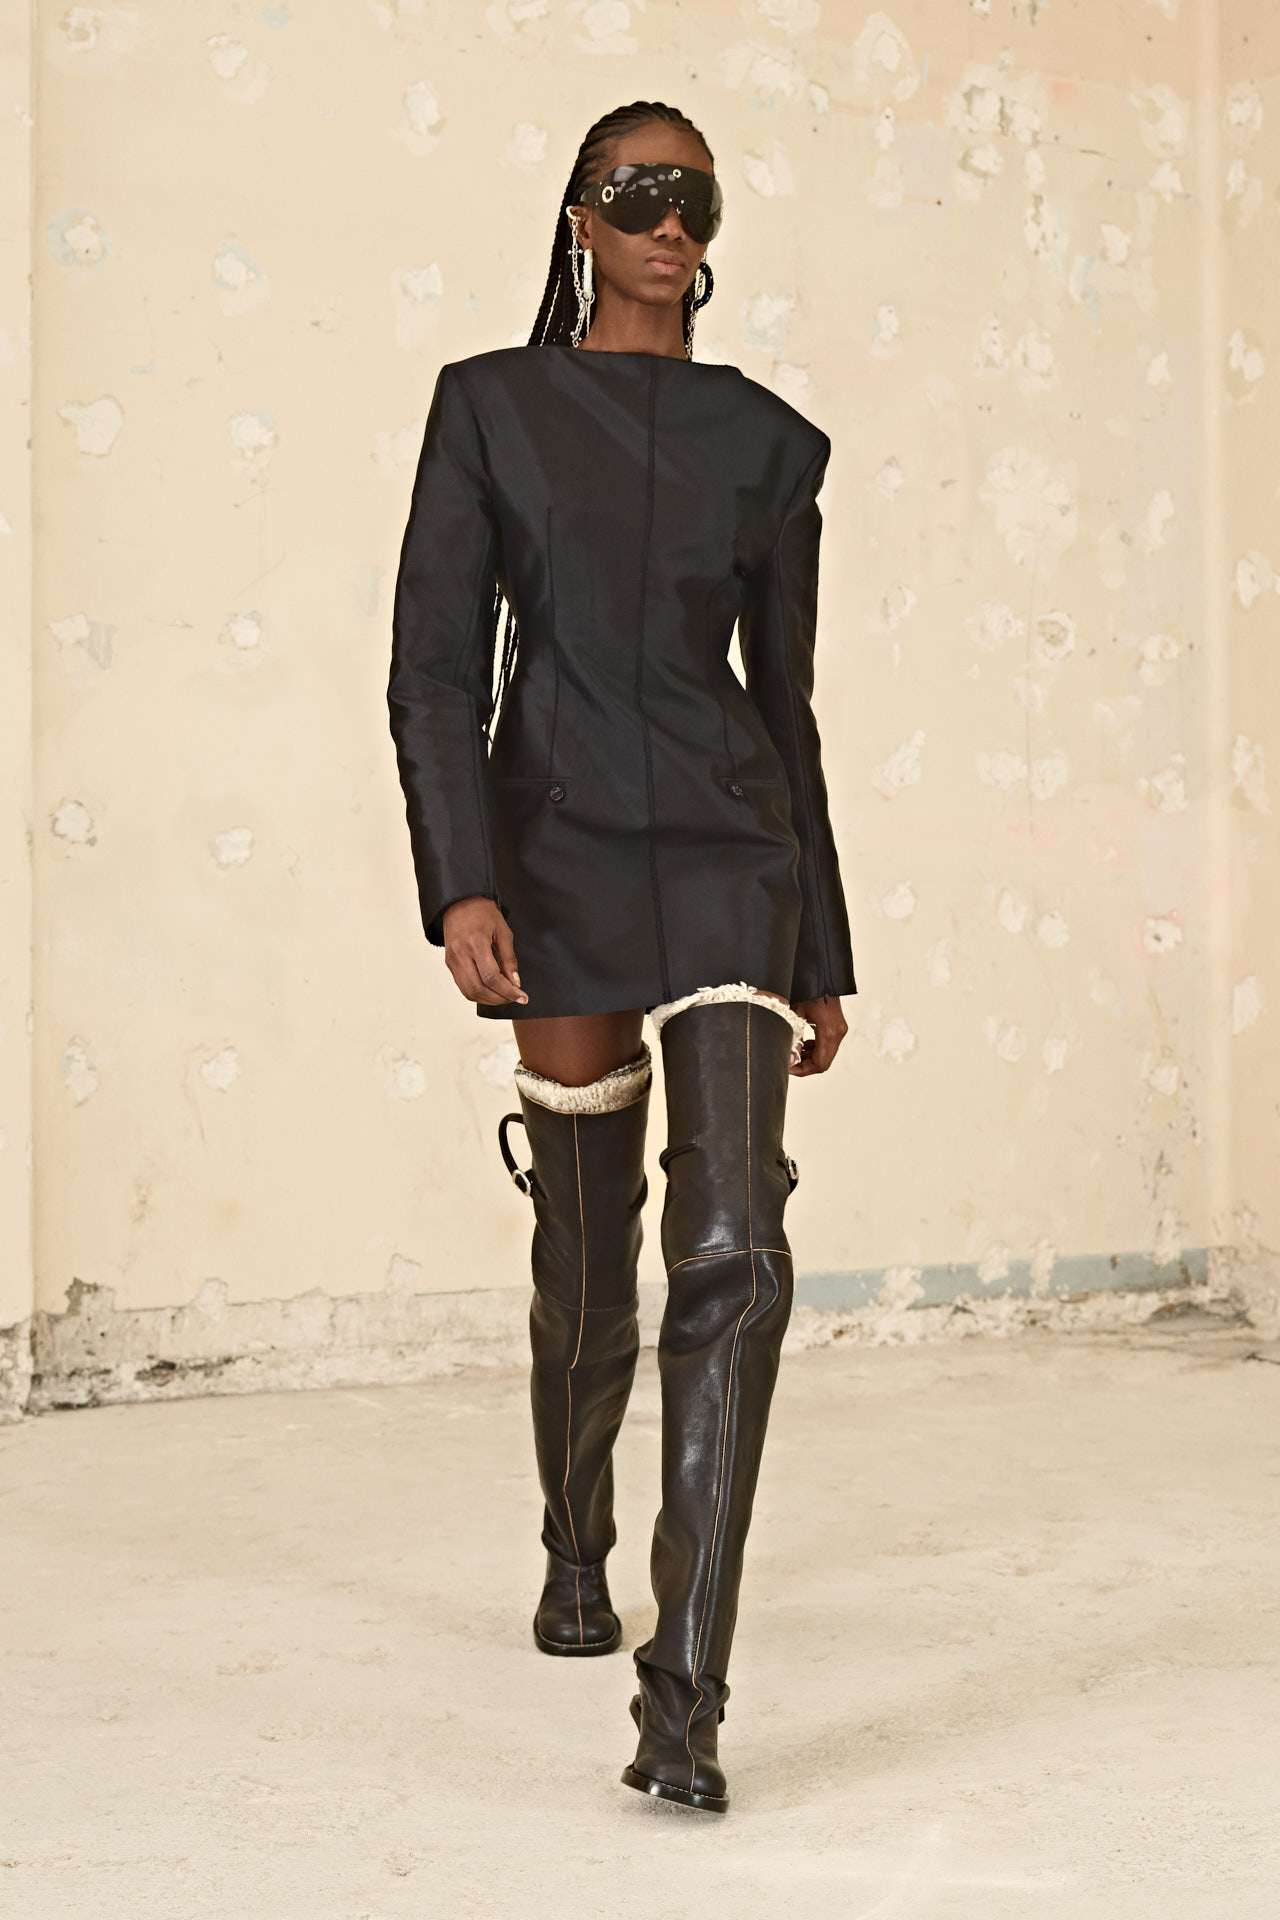 Look Fall/Winter 2021, image 35